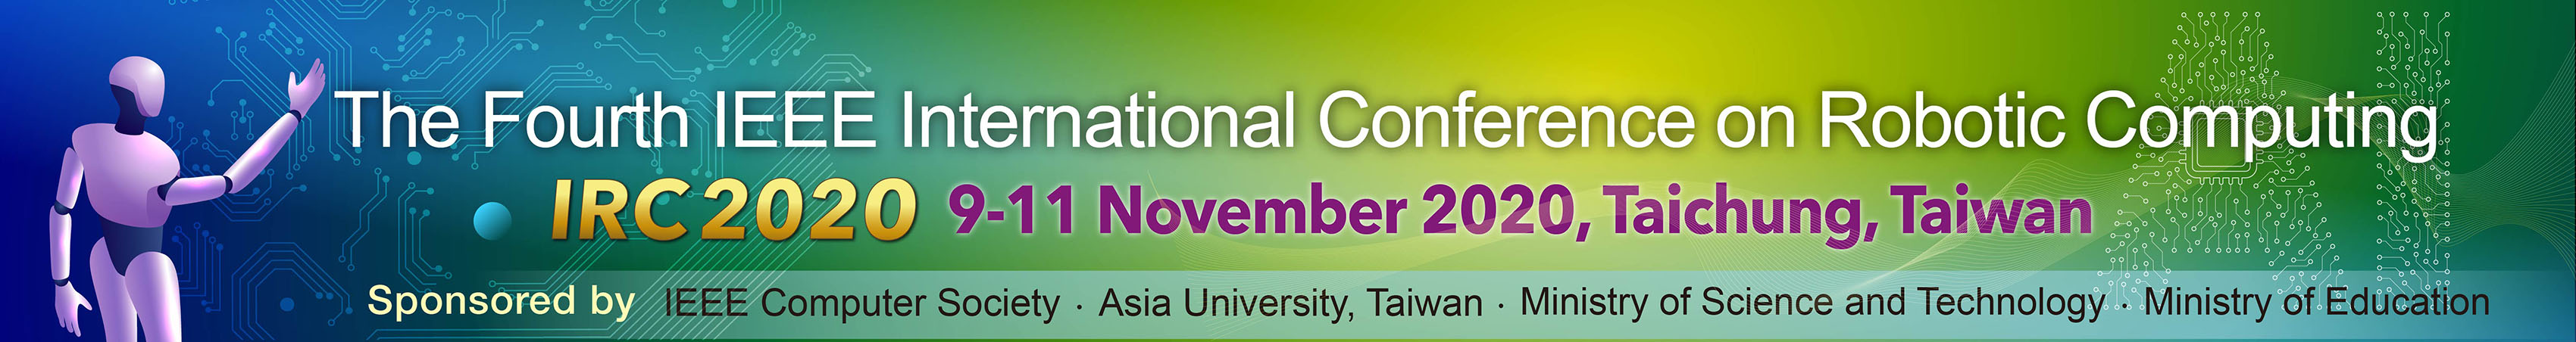 The Fourth IEEE International Conference on Robotic Computing 01